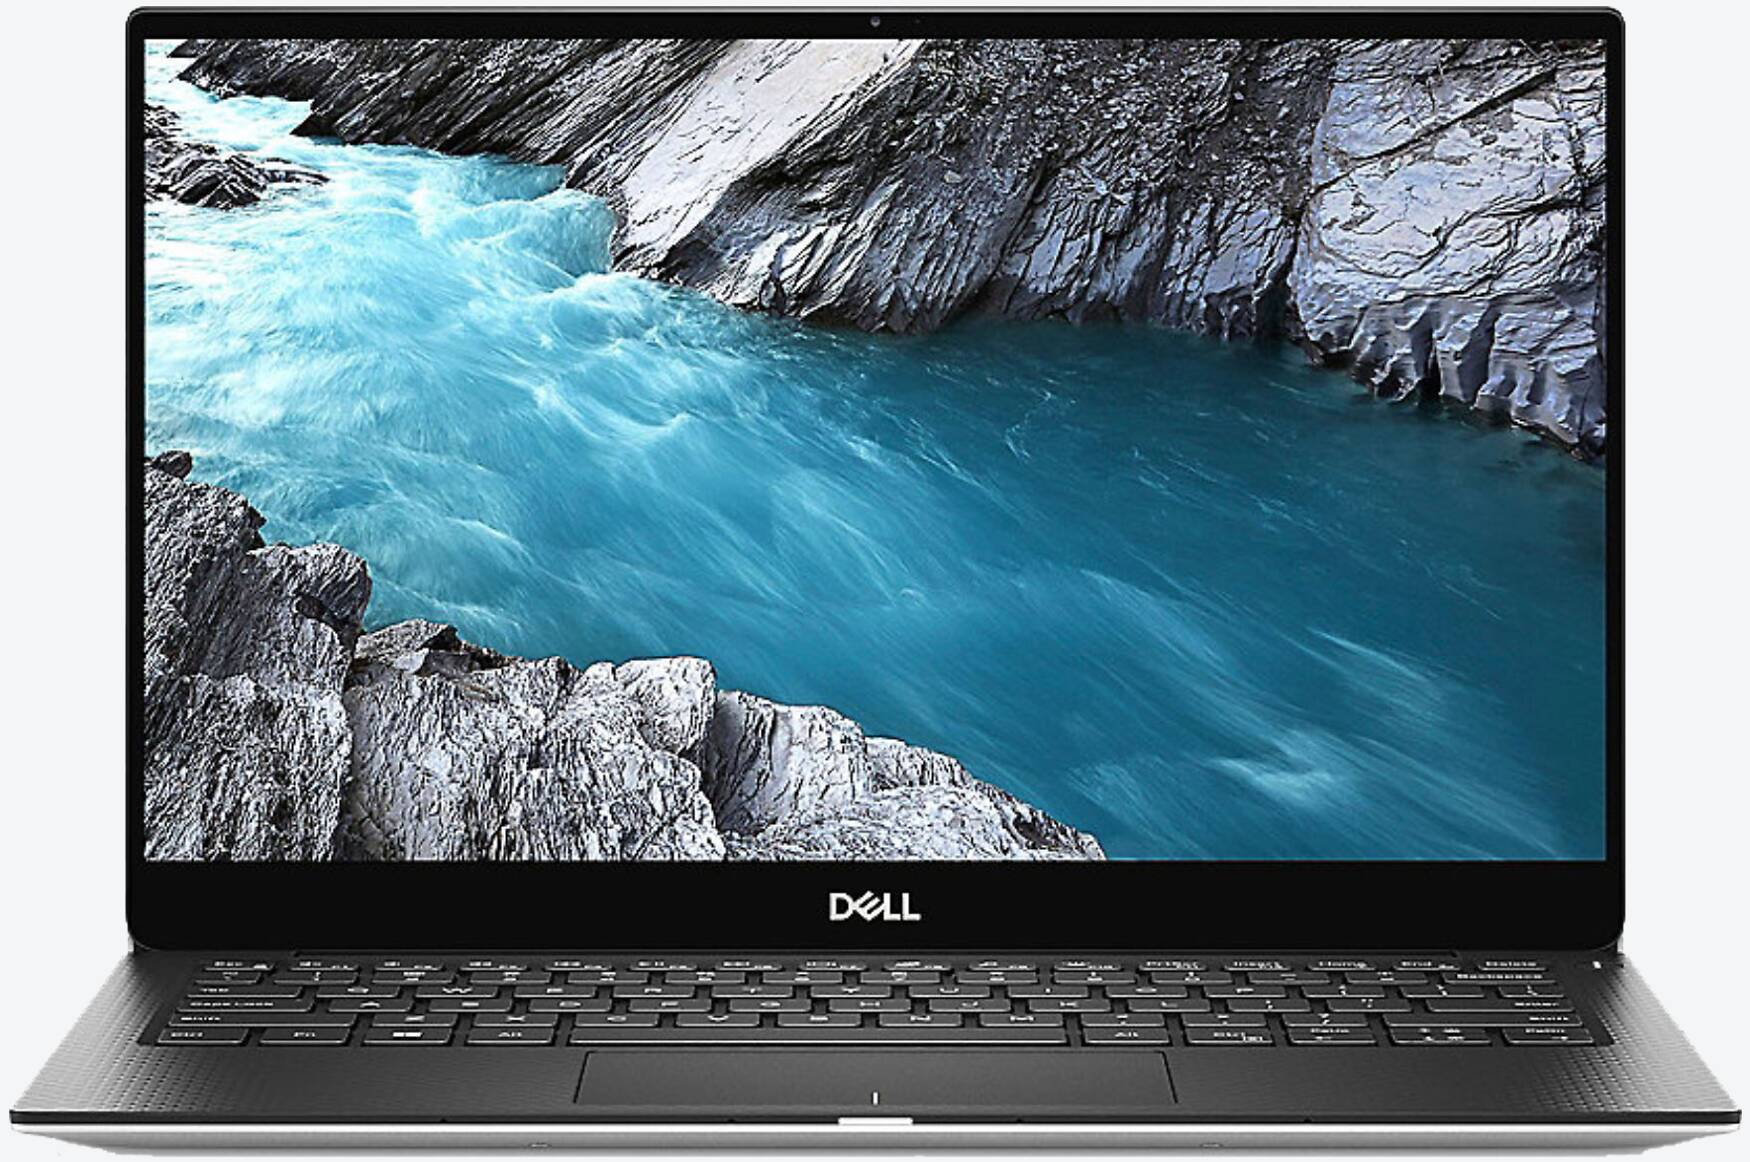 Dell XPS 13 (2019) 7390-202HM UHD Touch